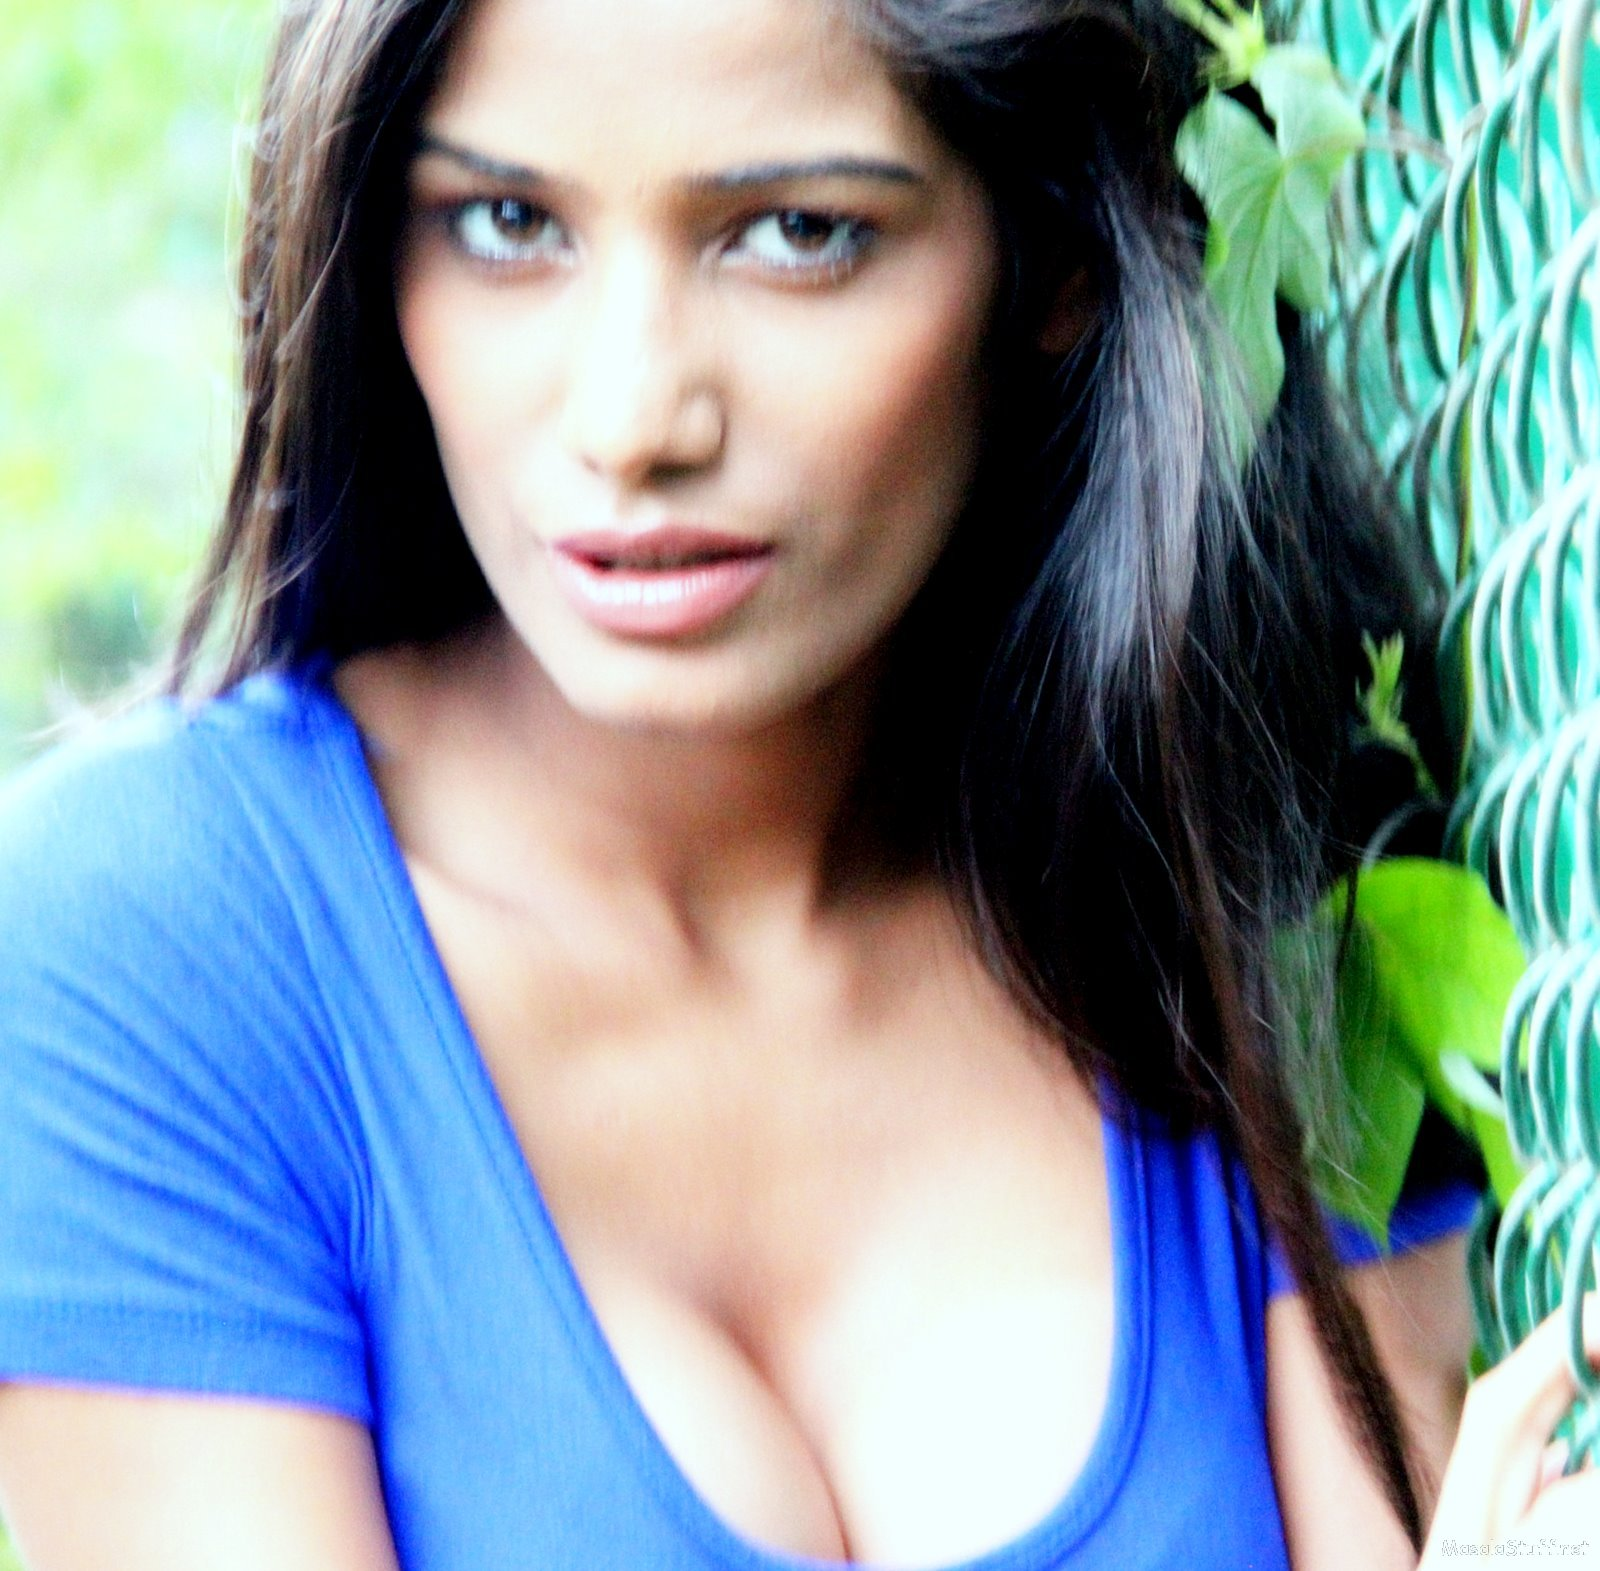 High Quality Bollywood Celebrity Pictures: Poonam Pandey ...